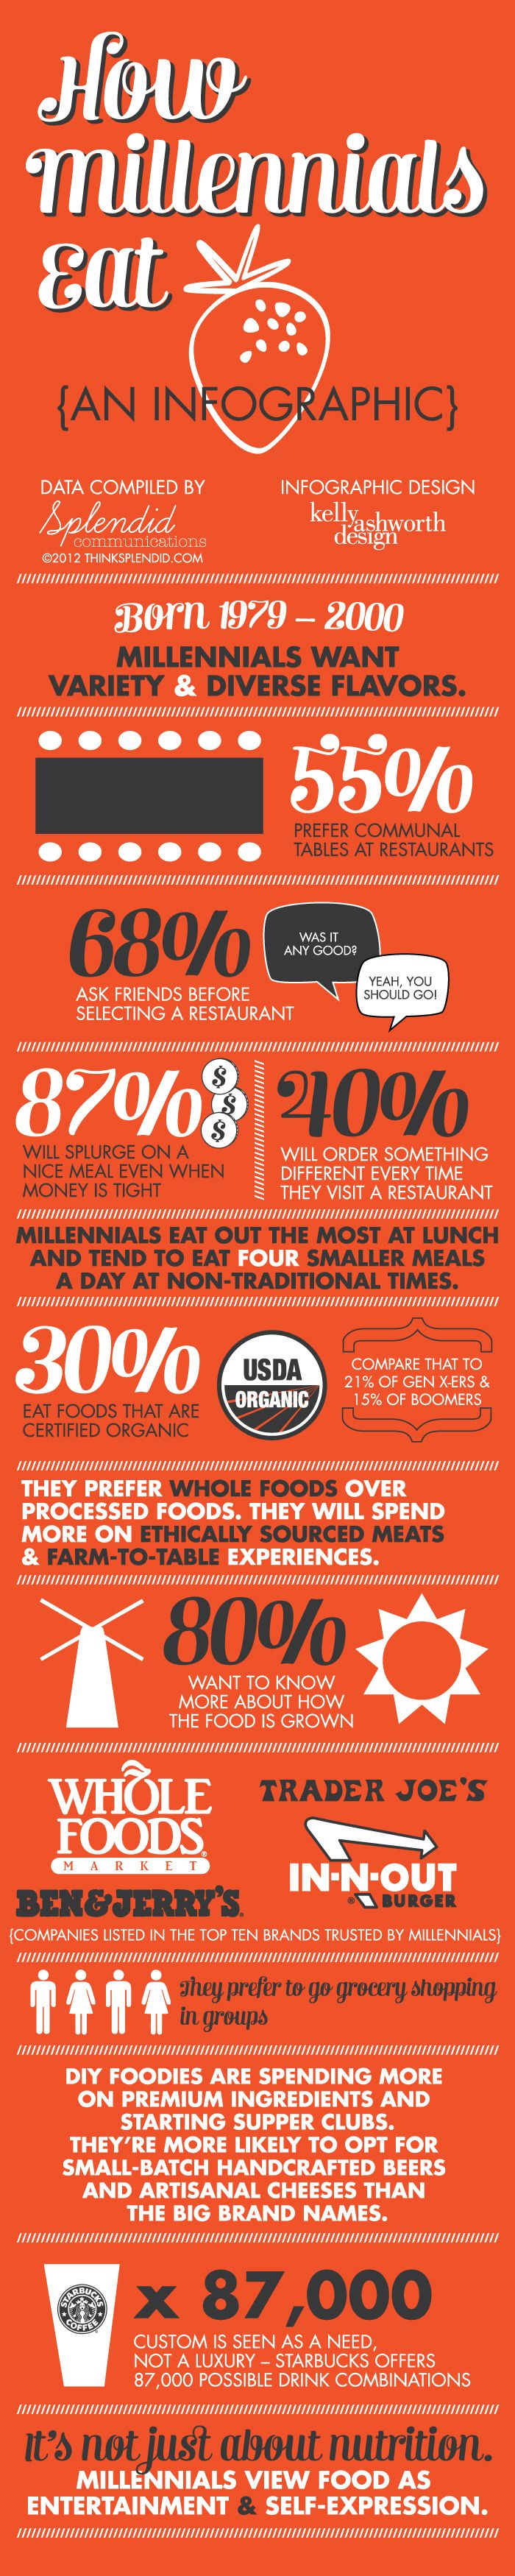 Millennials Are the Tastemakers in Food